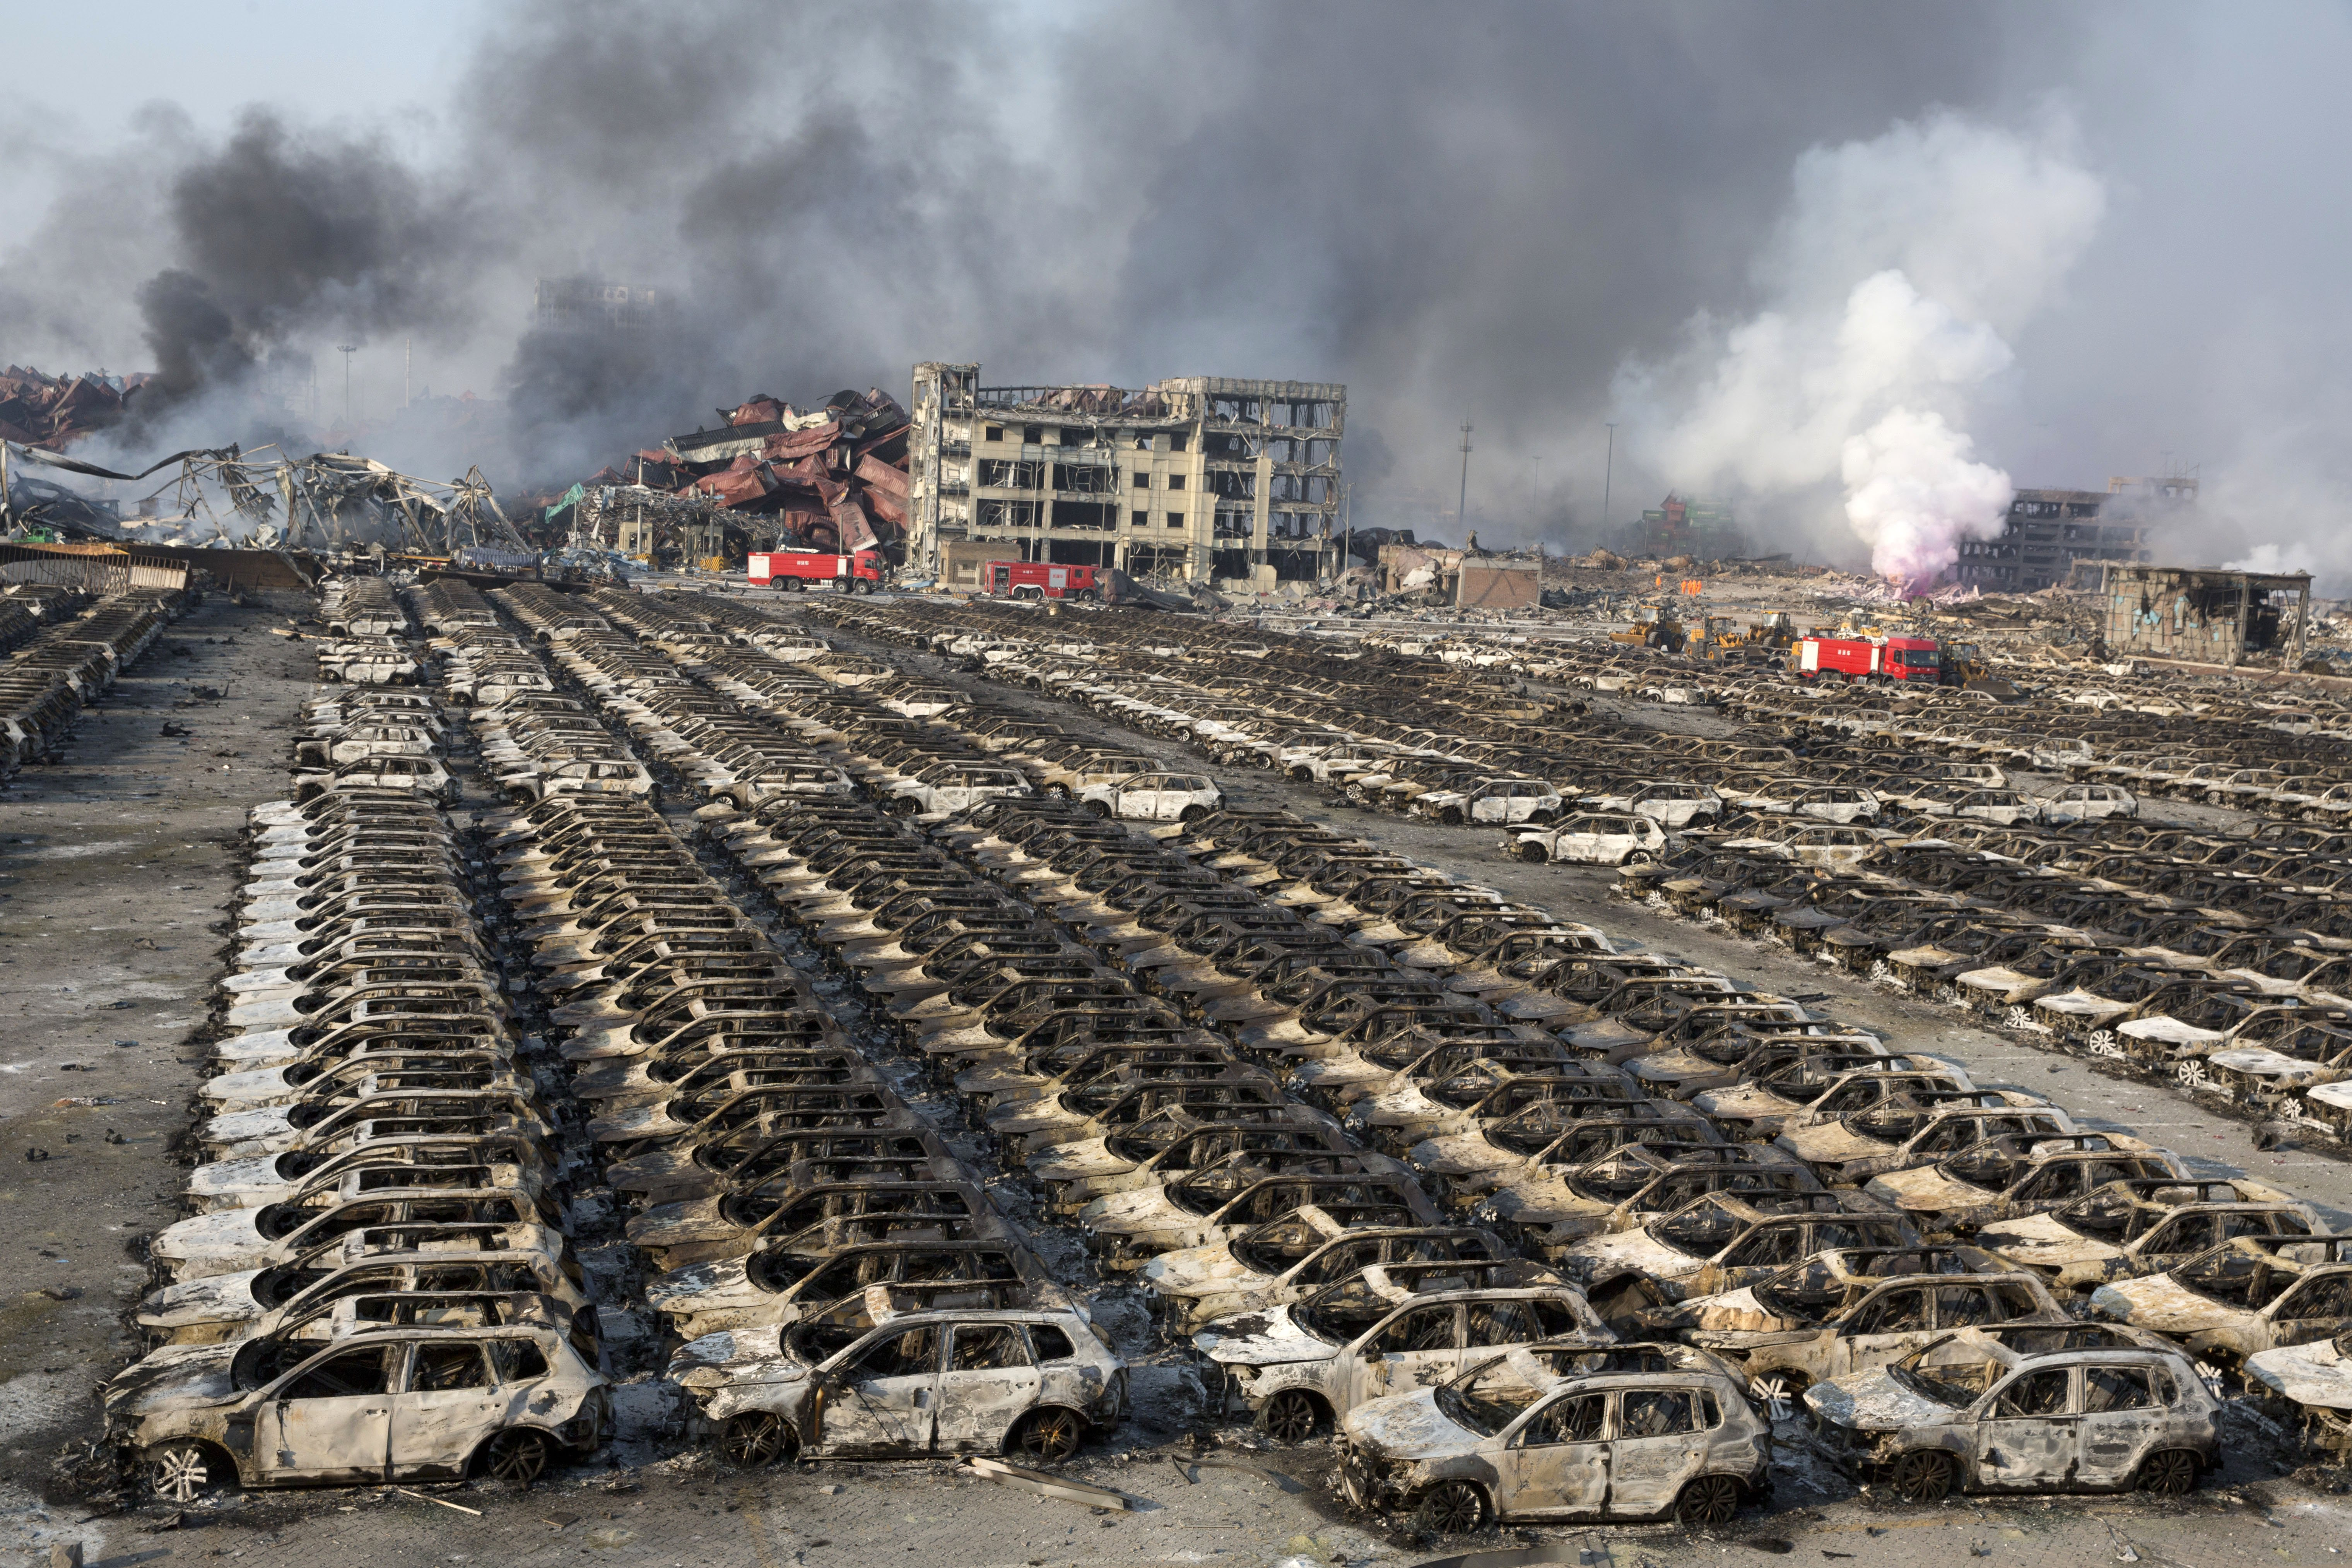 Smoke billows from the site of an explosion that reduced a parking lot filled with new cars to charred remains at a warehouse in northeastern China's Tianjin municipality on Aug. 13, 2015.